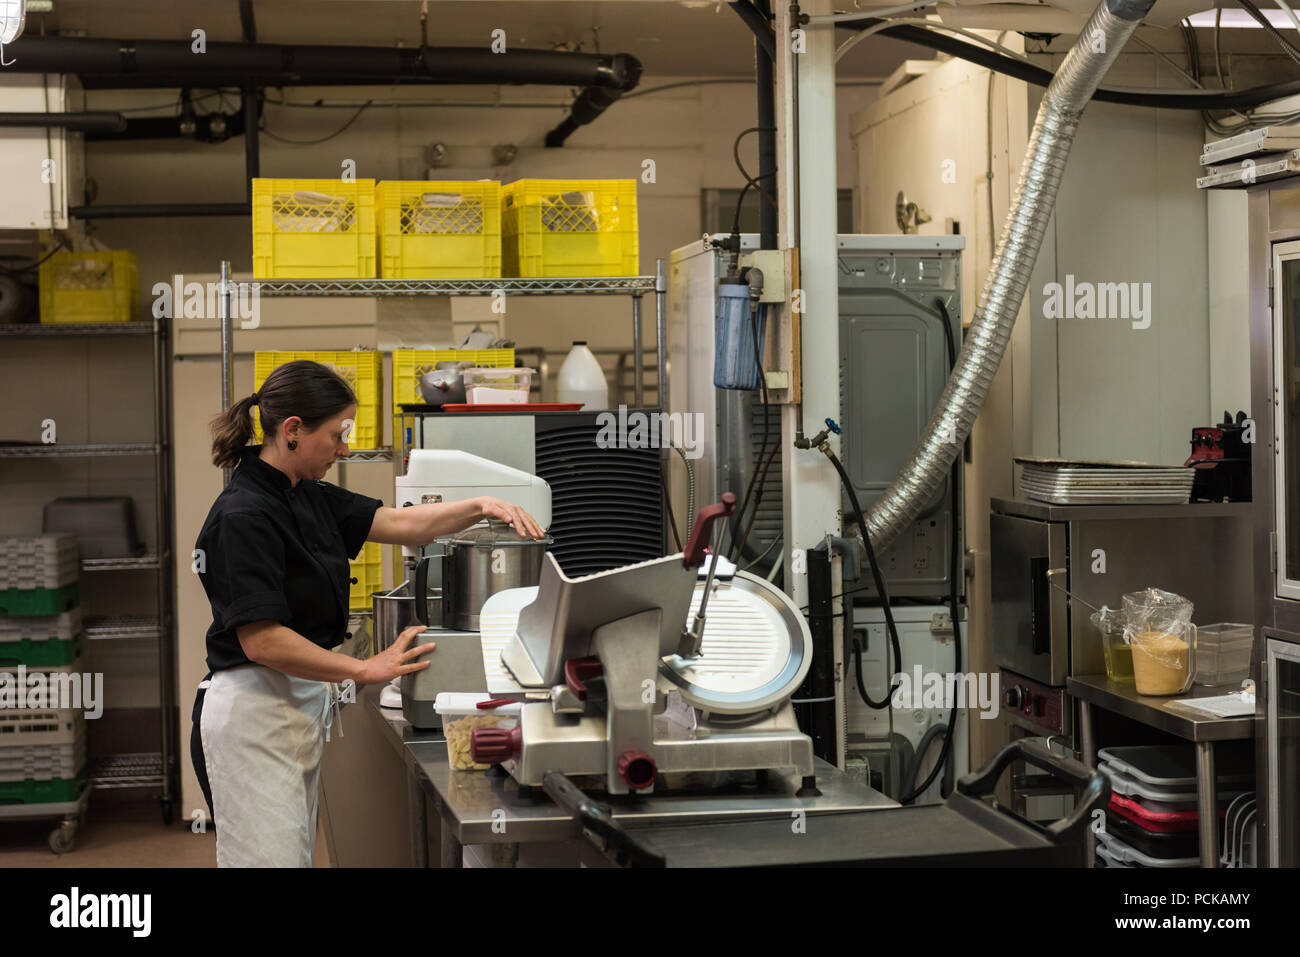 Chef using a grinder in a commercial kitchen - Stock Image